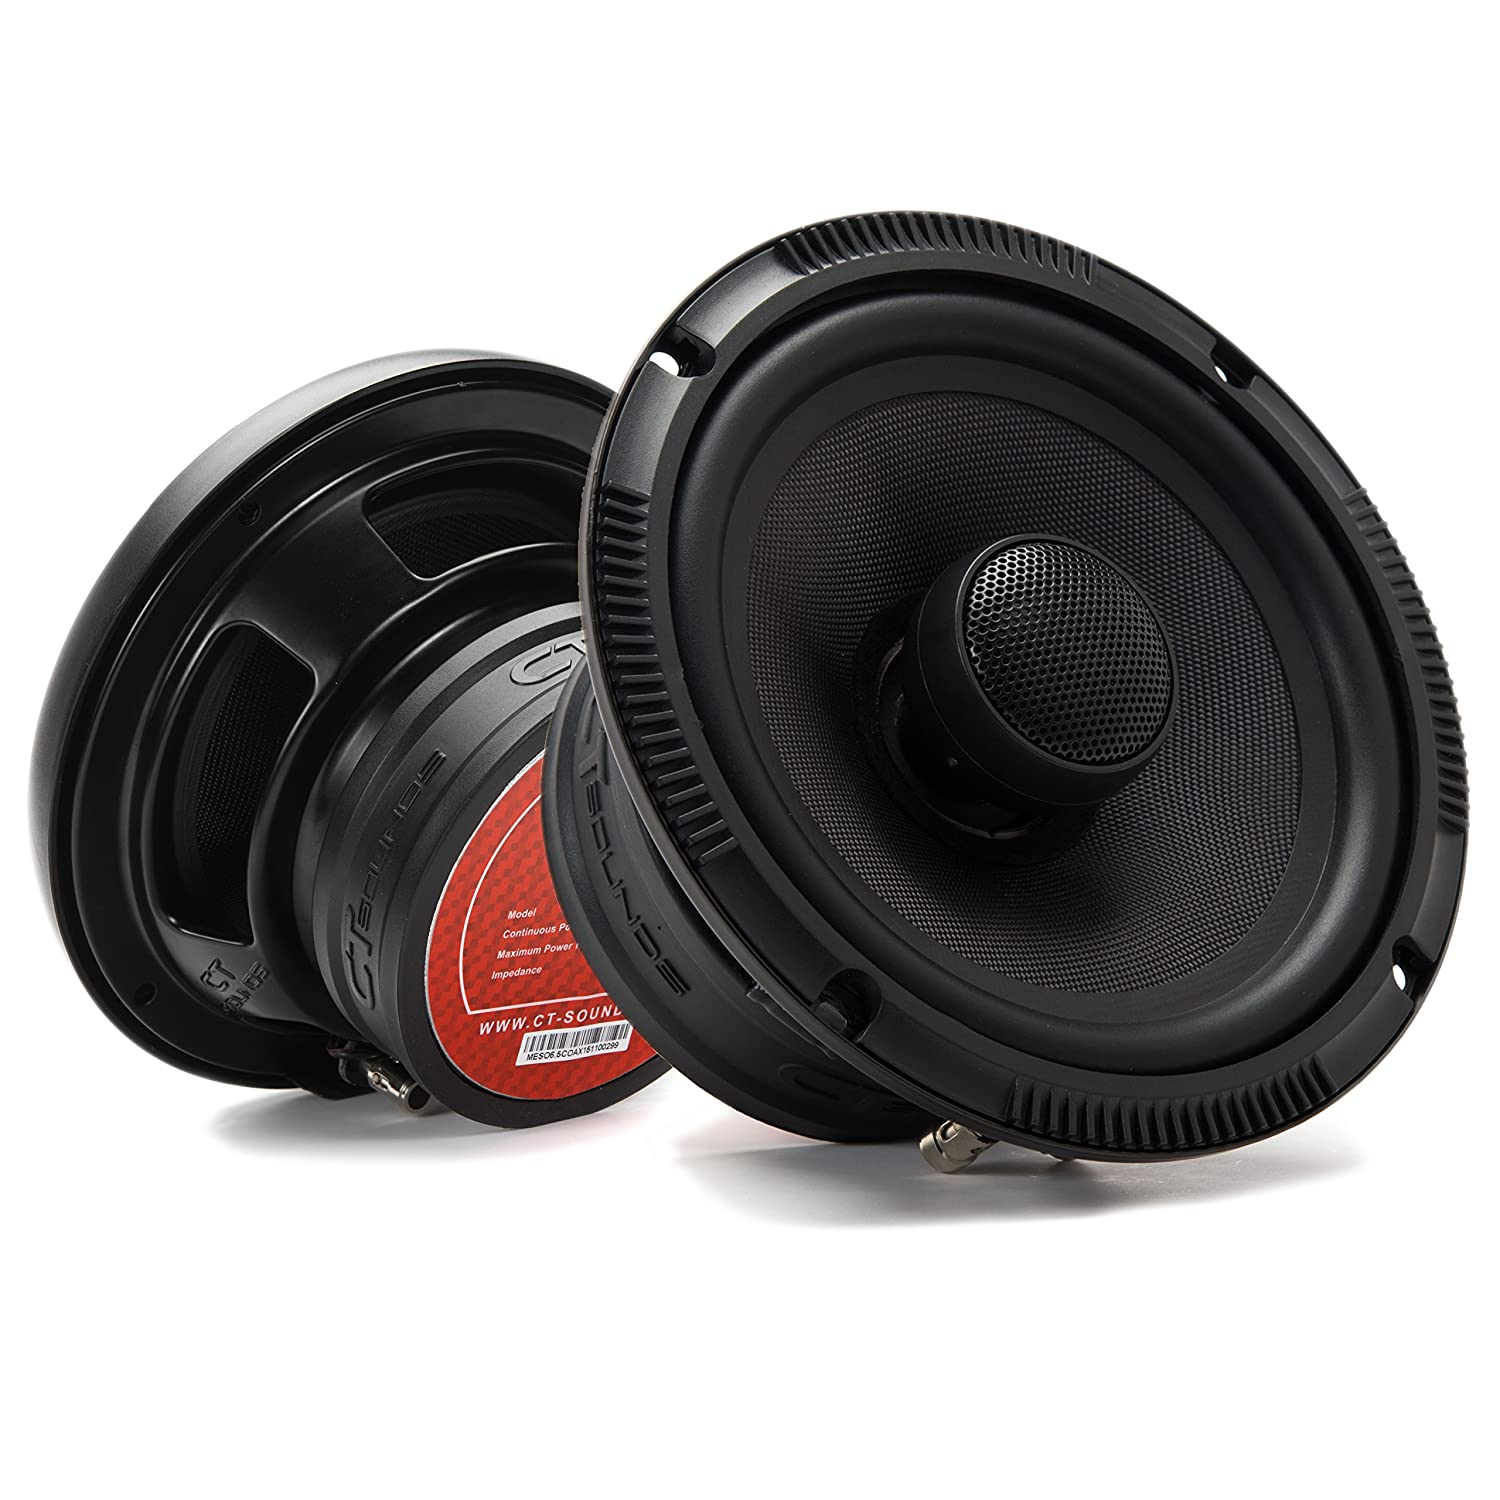 【HOT】Best Car Speakers For Sound Quality » Car Speakers